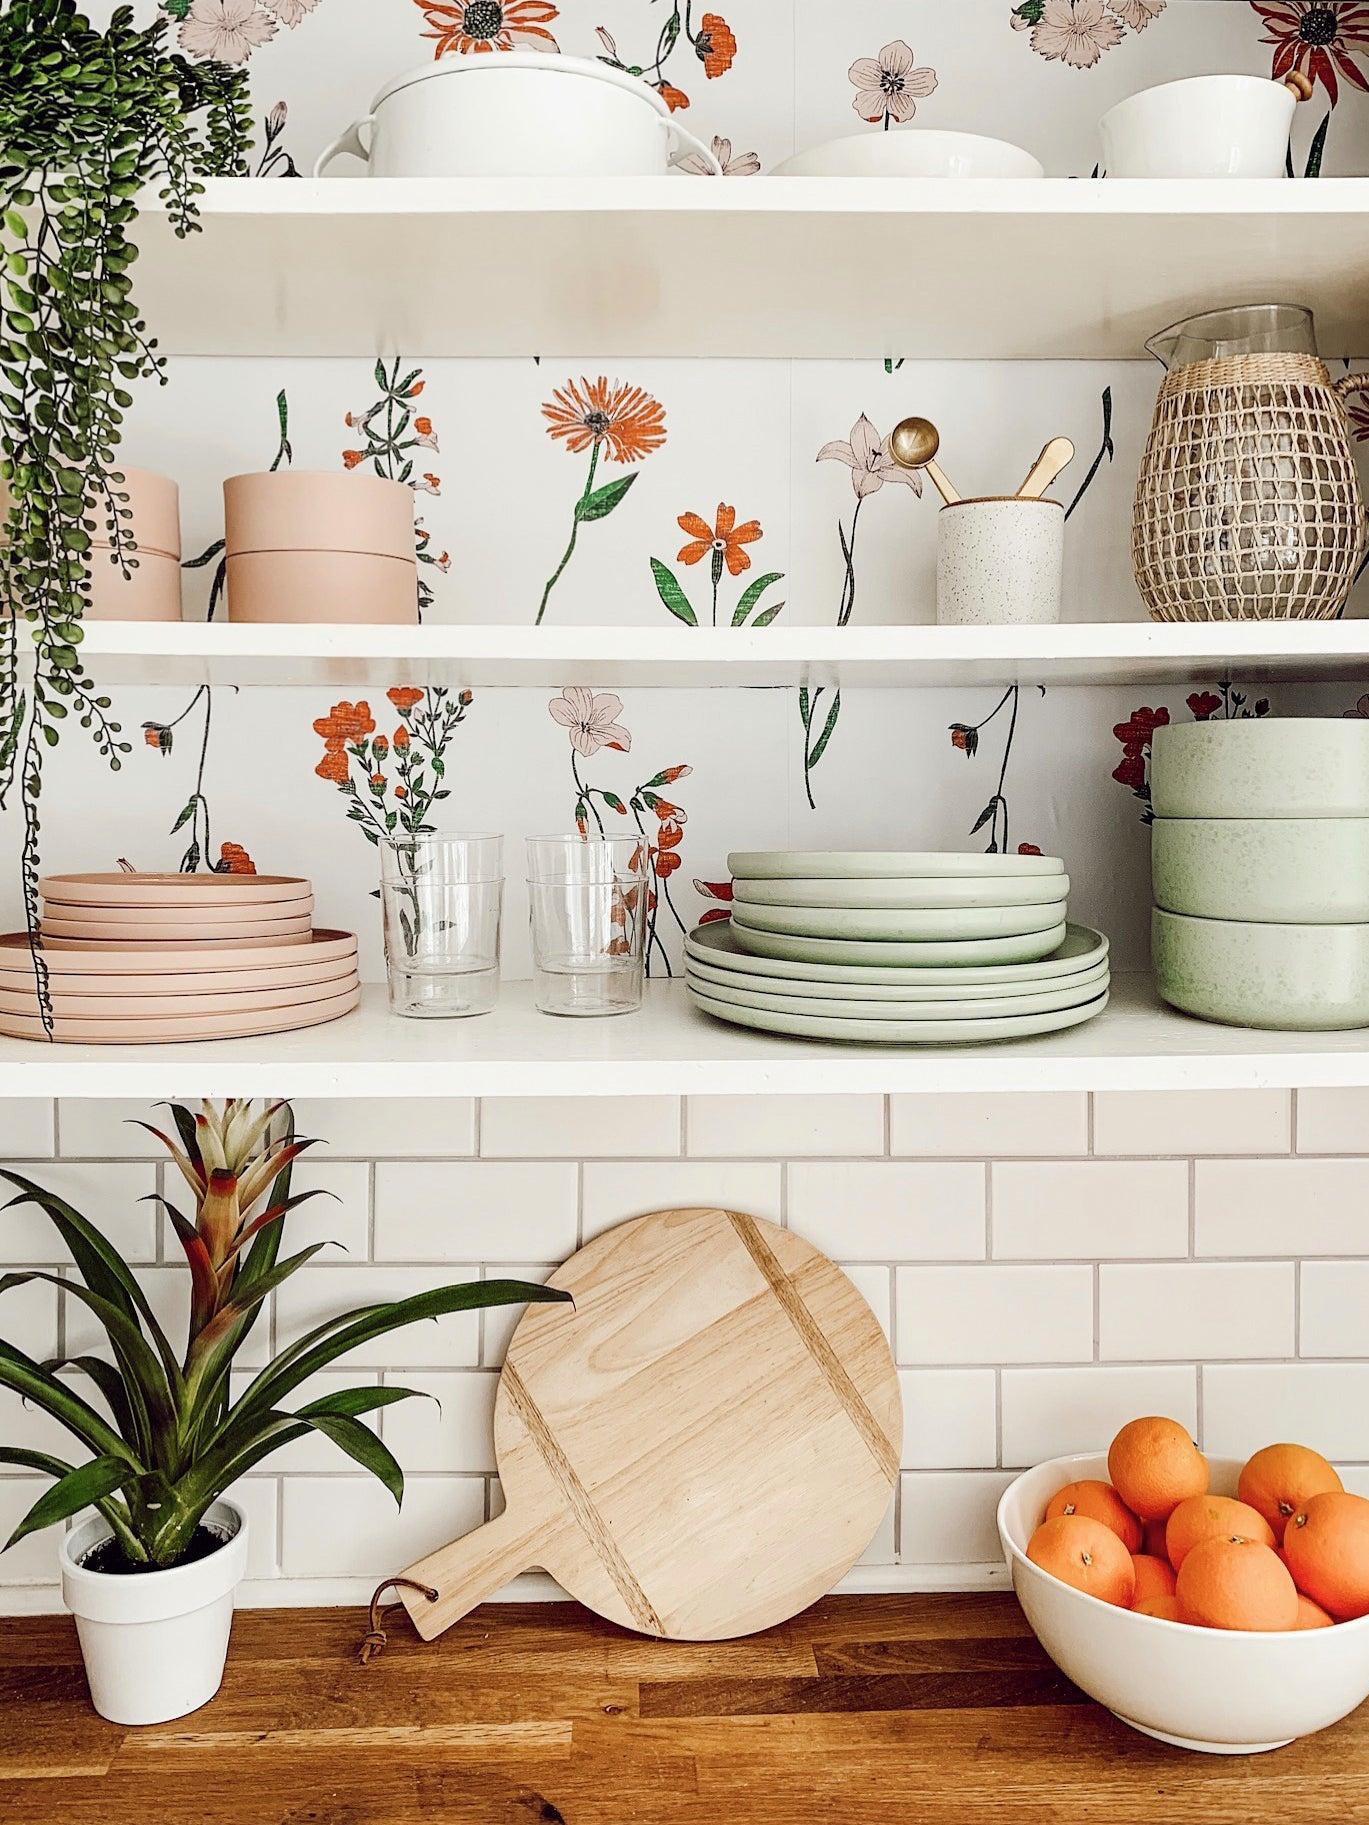 open shelves with wallpaper floral design and mint and pink plates